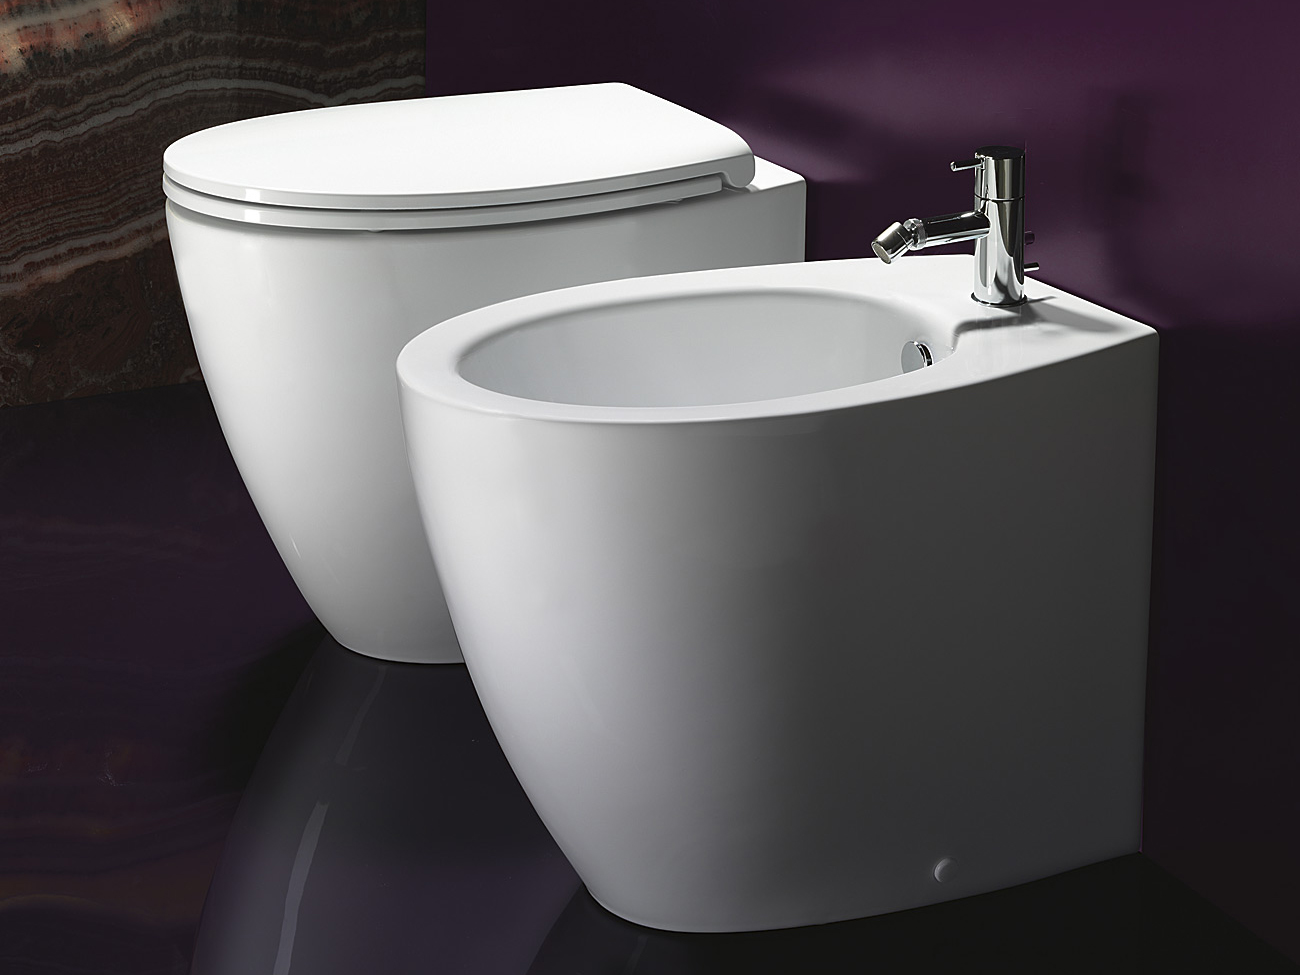 Ceramic bidet velis 57 velis collection by ceramica catalano for Ceramica catalano